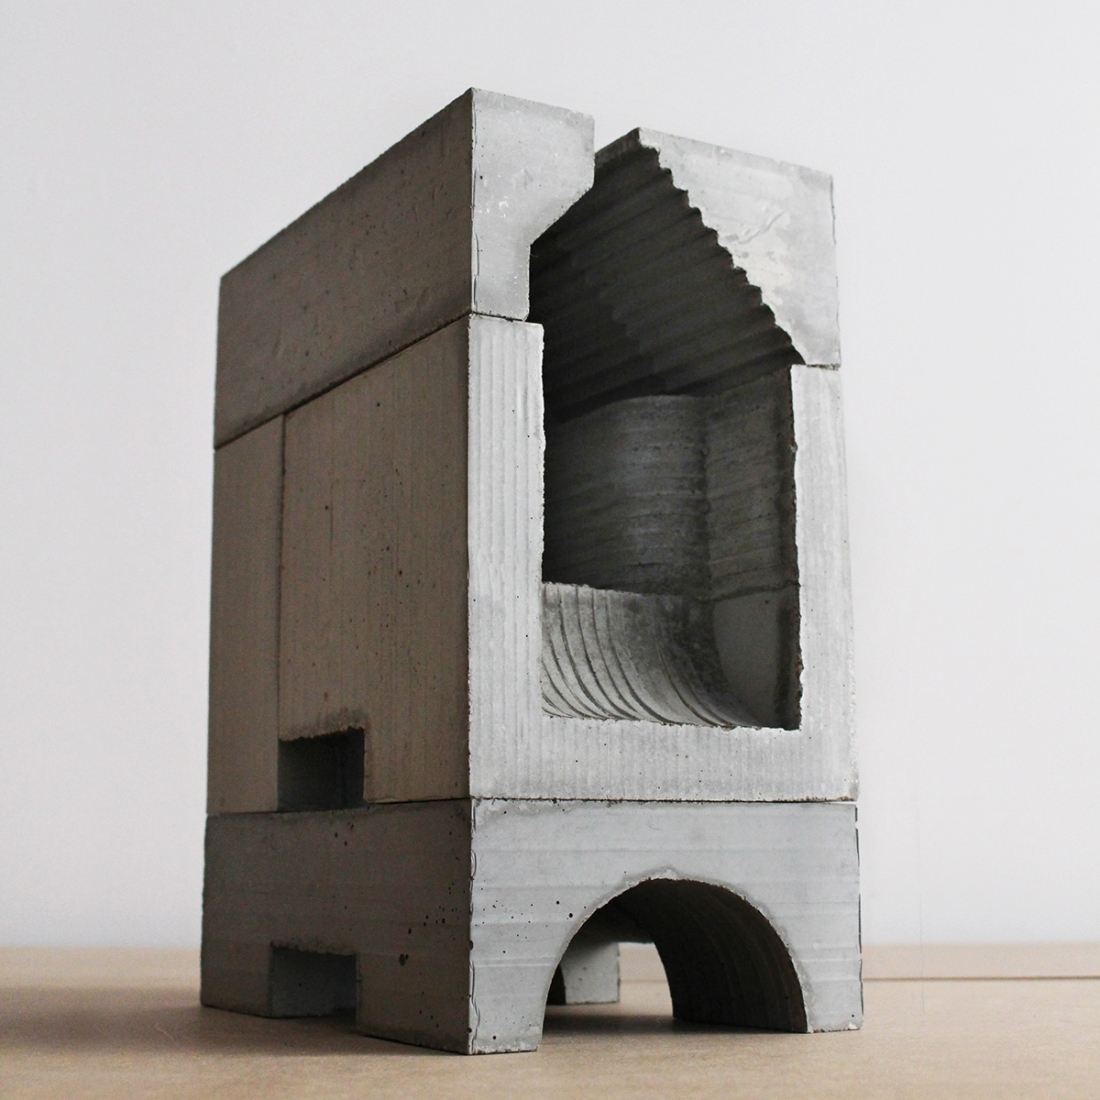 miniature concrete sculptures of brutalist structures can be used like grown